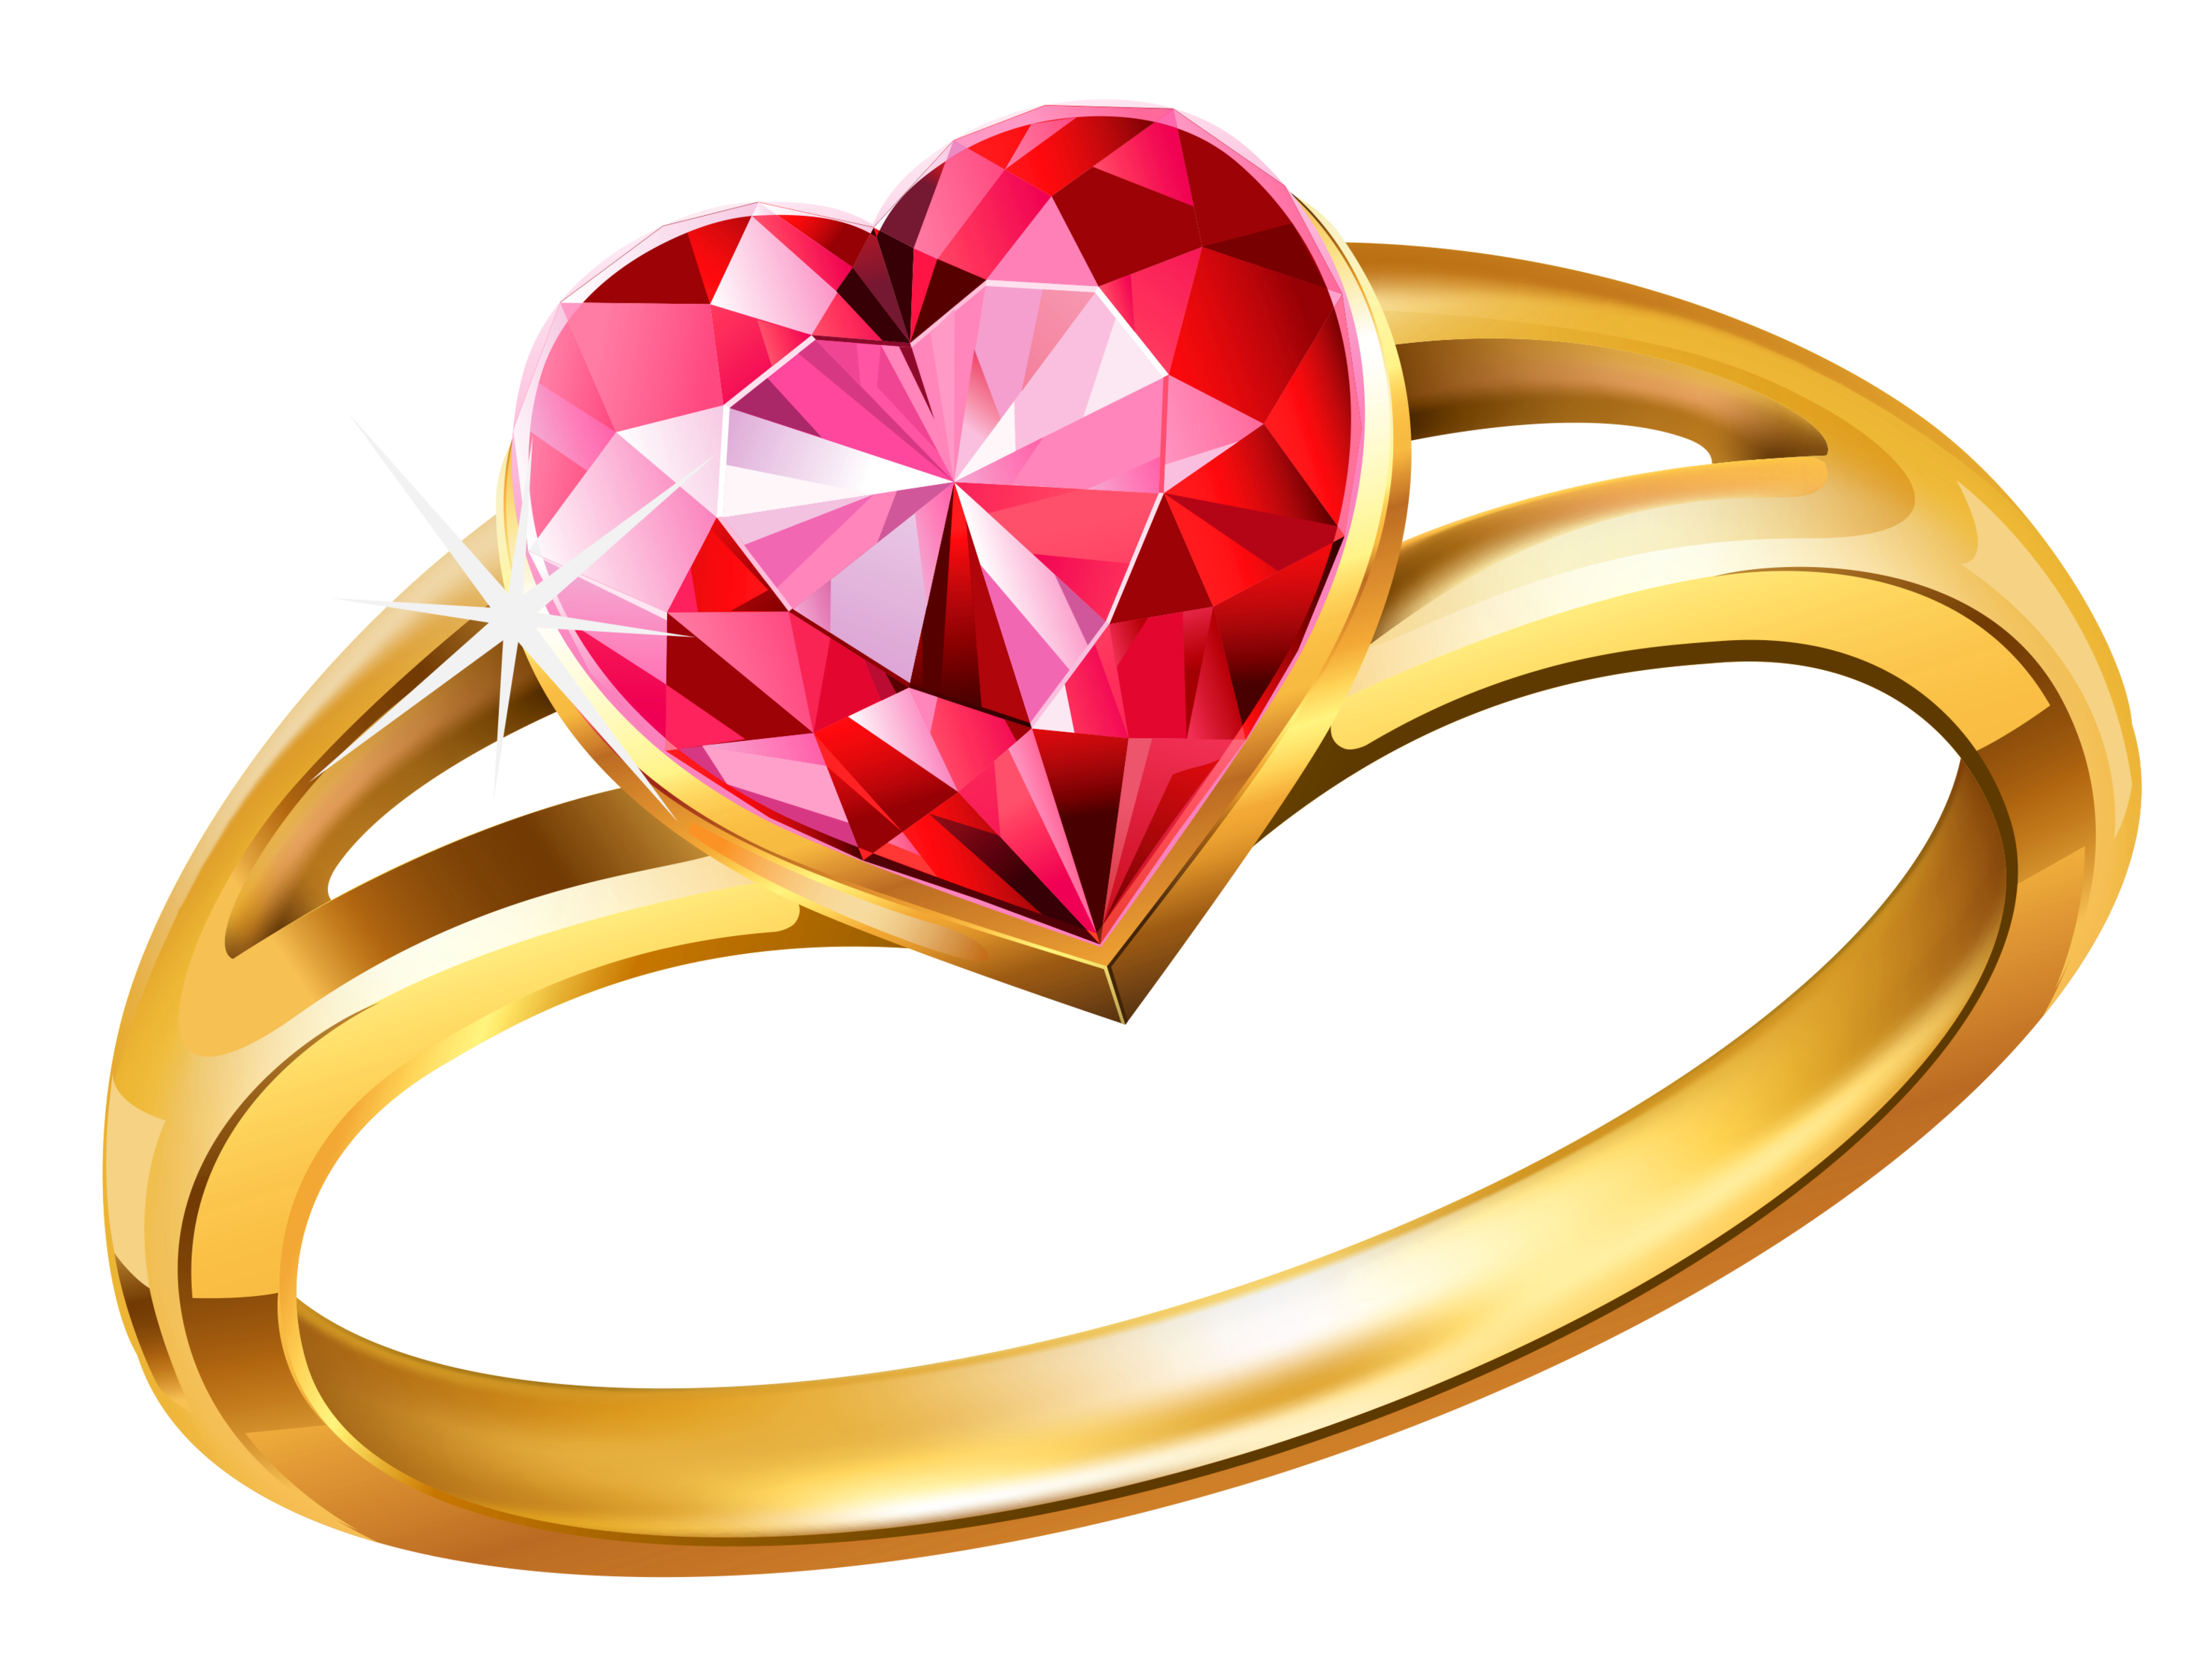 2952x2249 Clipart Ring